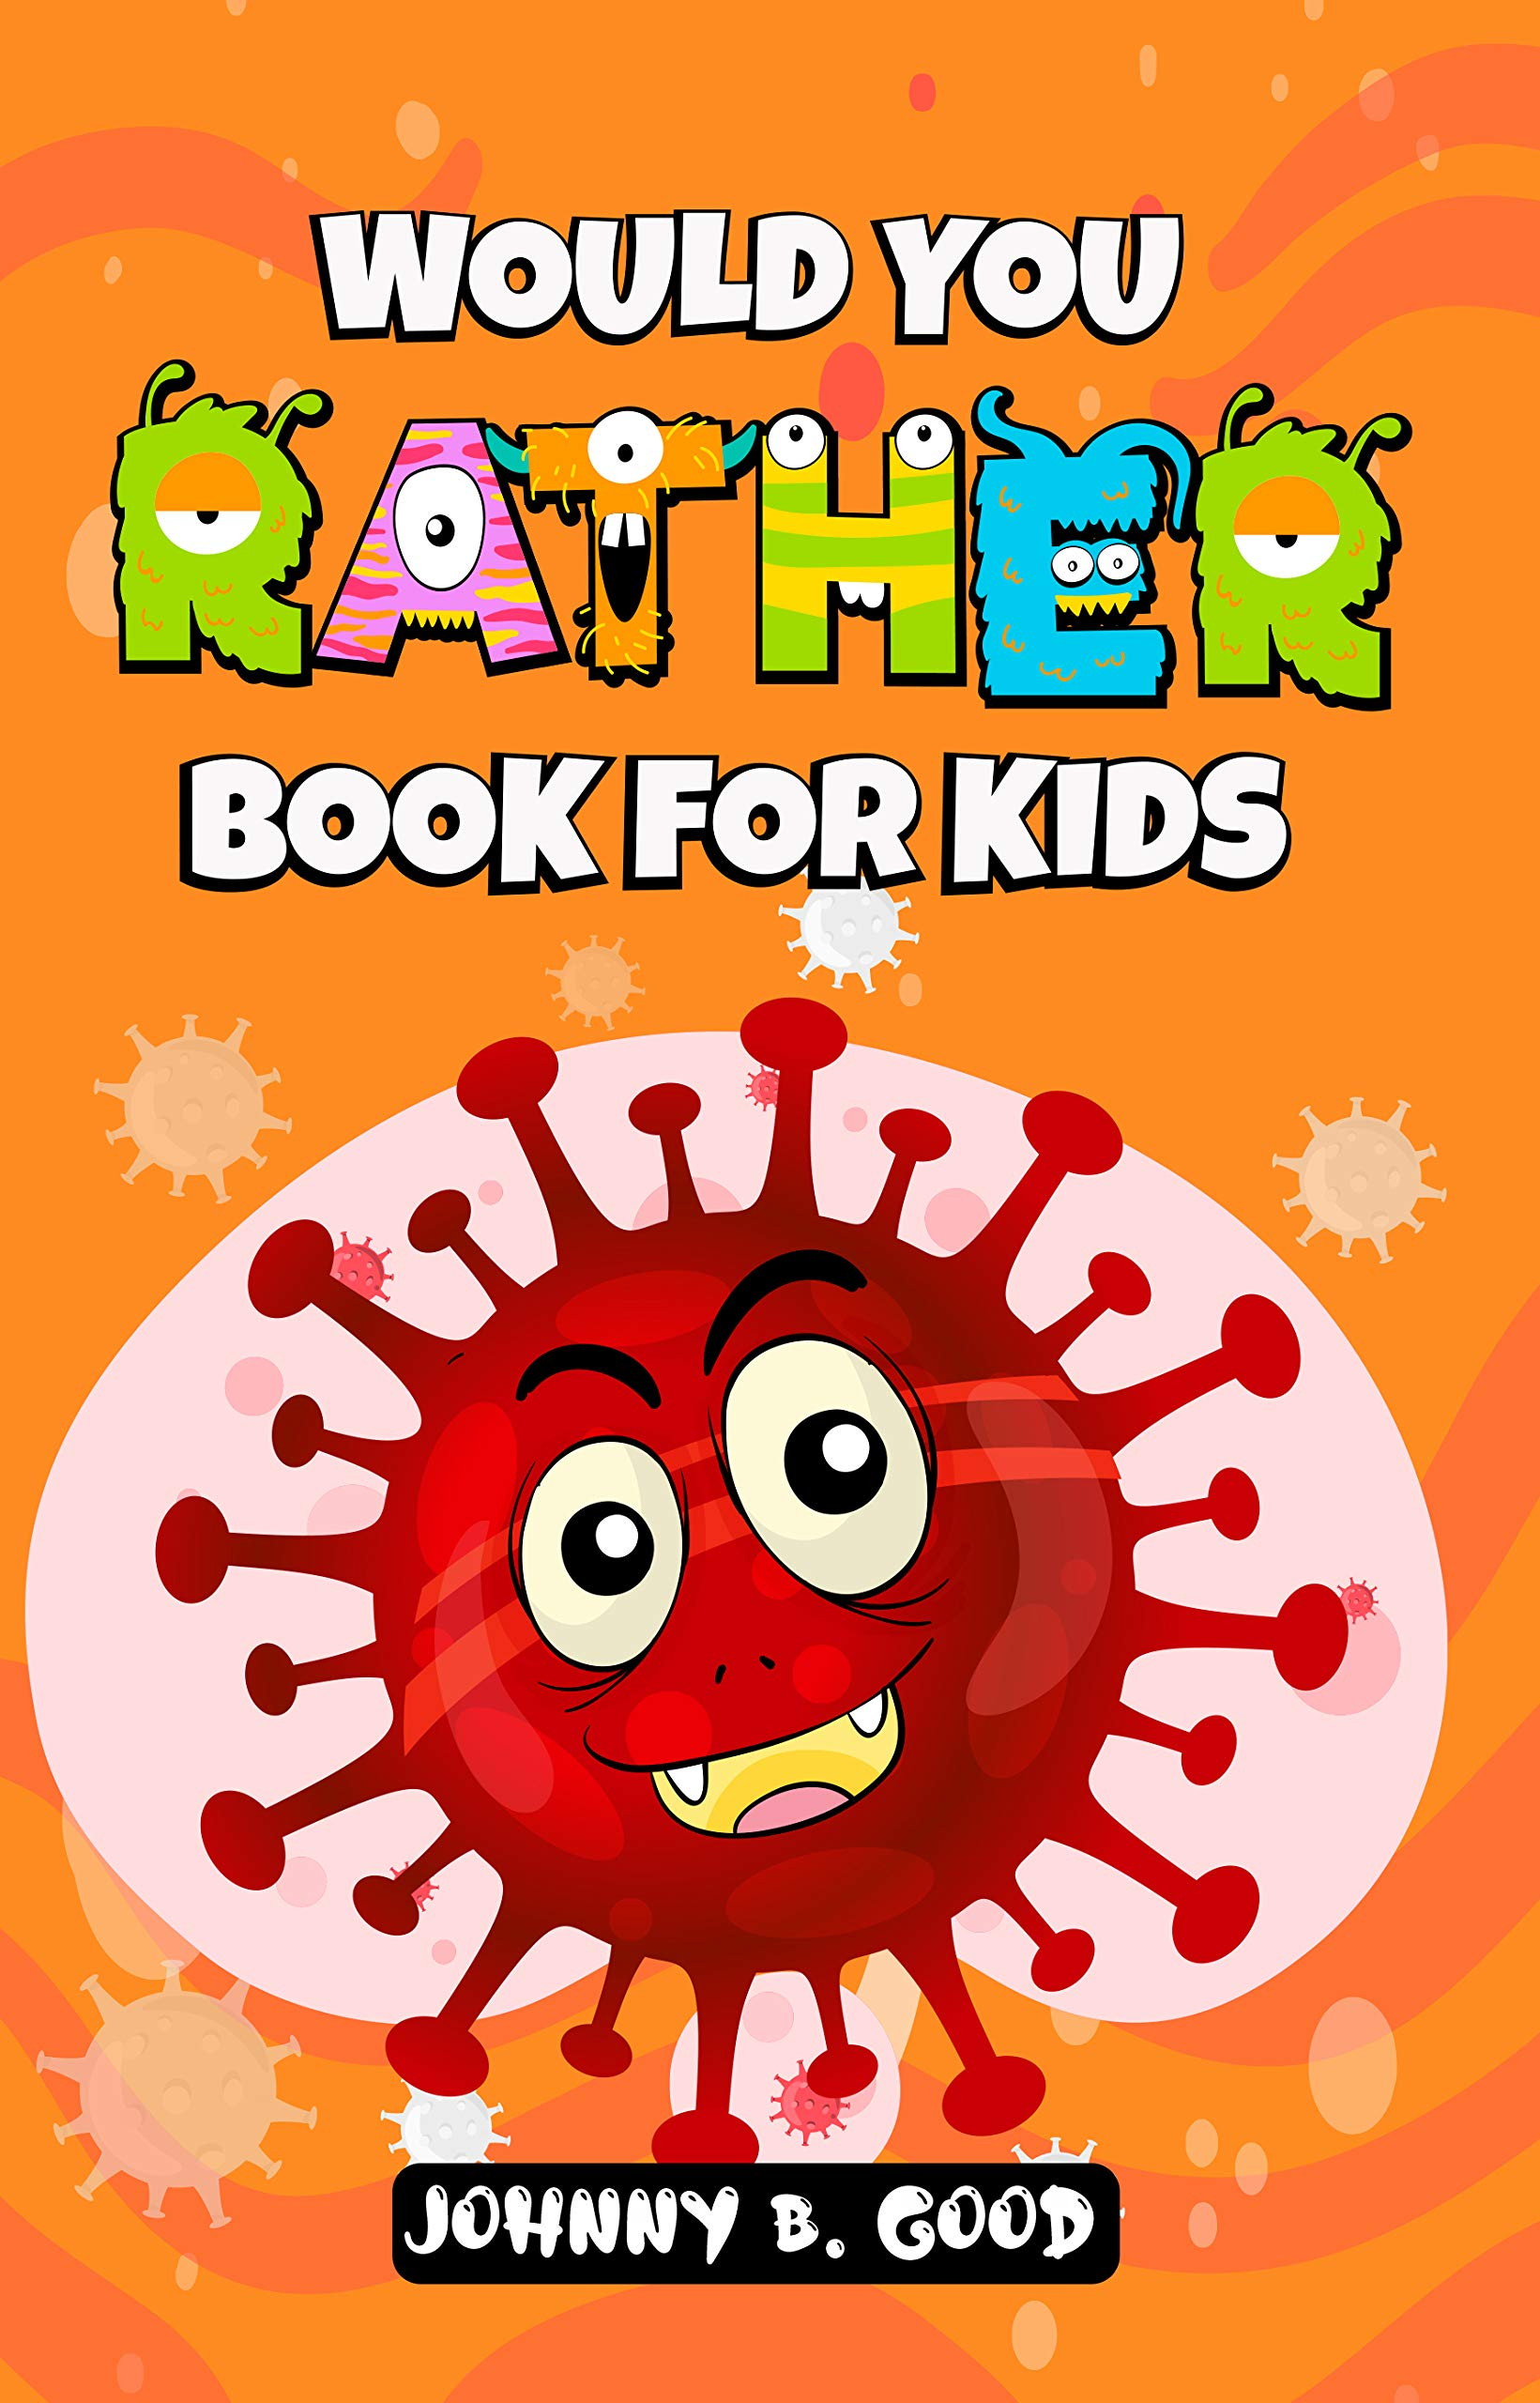 Would You Rather Book For Kids: Funny Questions to Educate and Entertain Kids ages 6-12